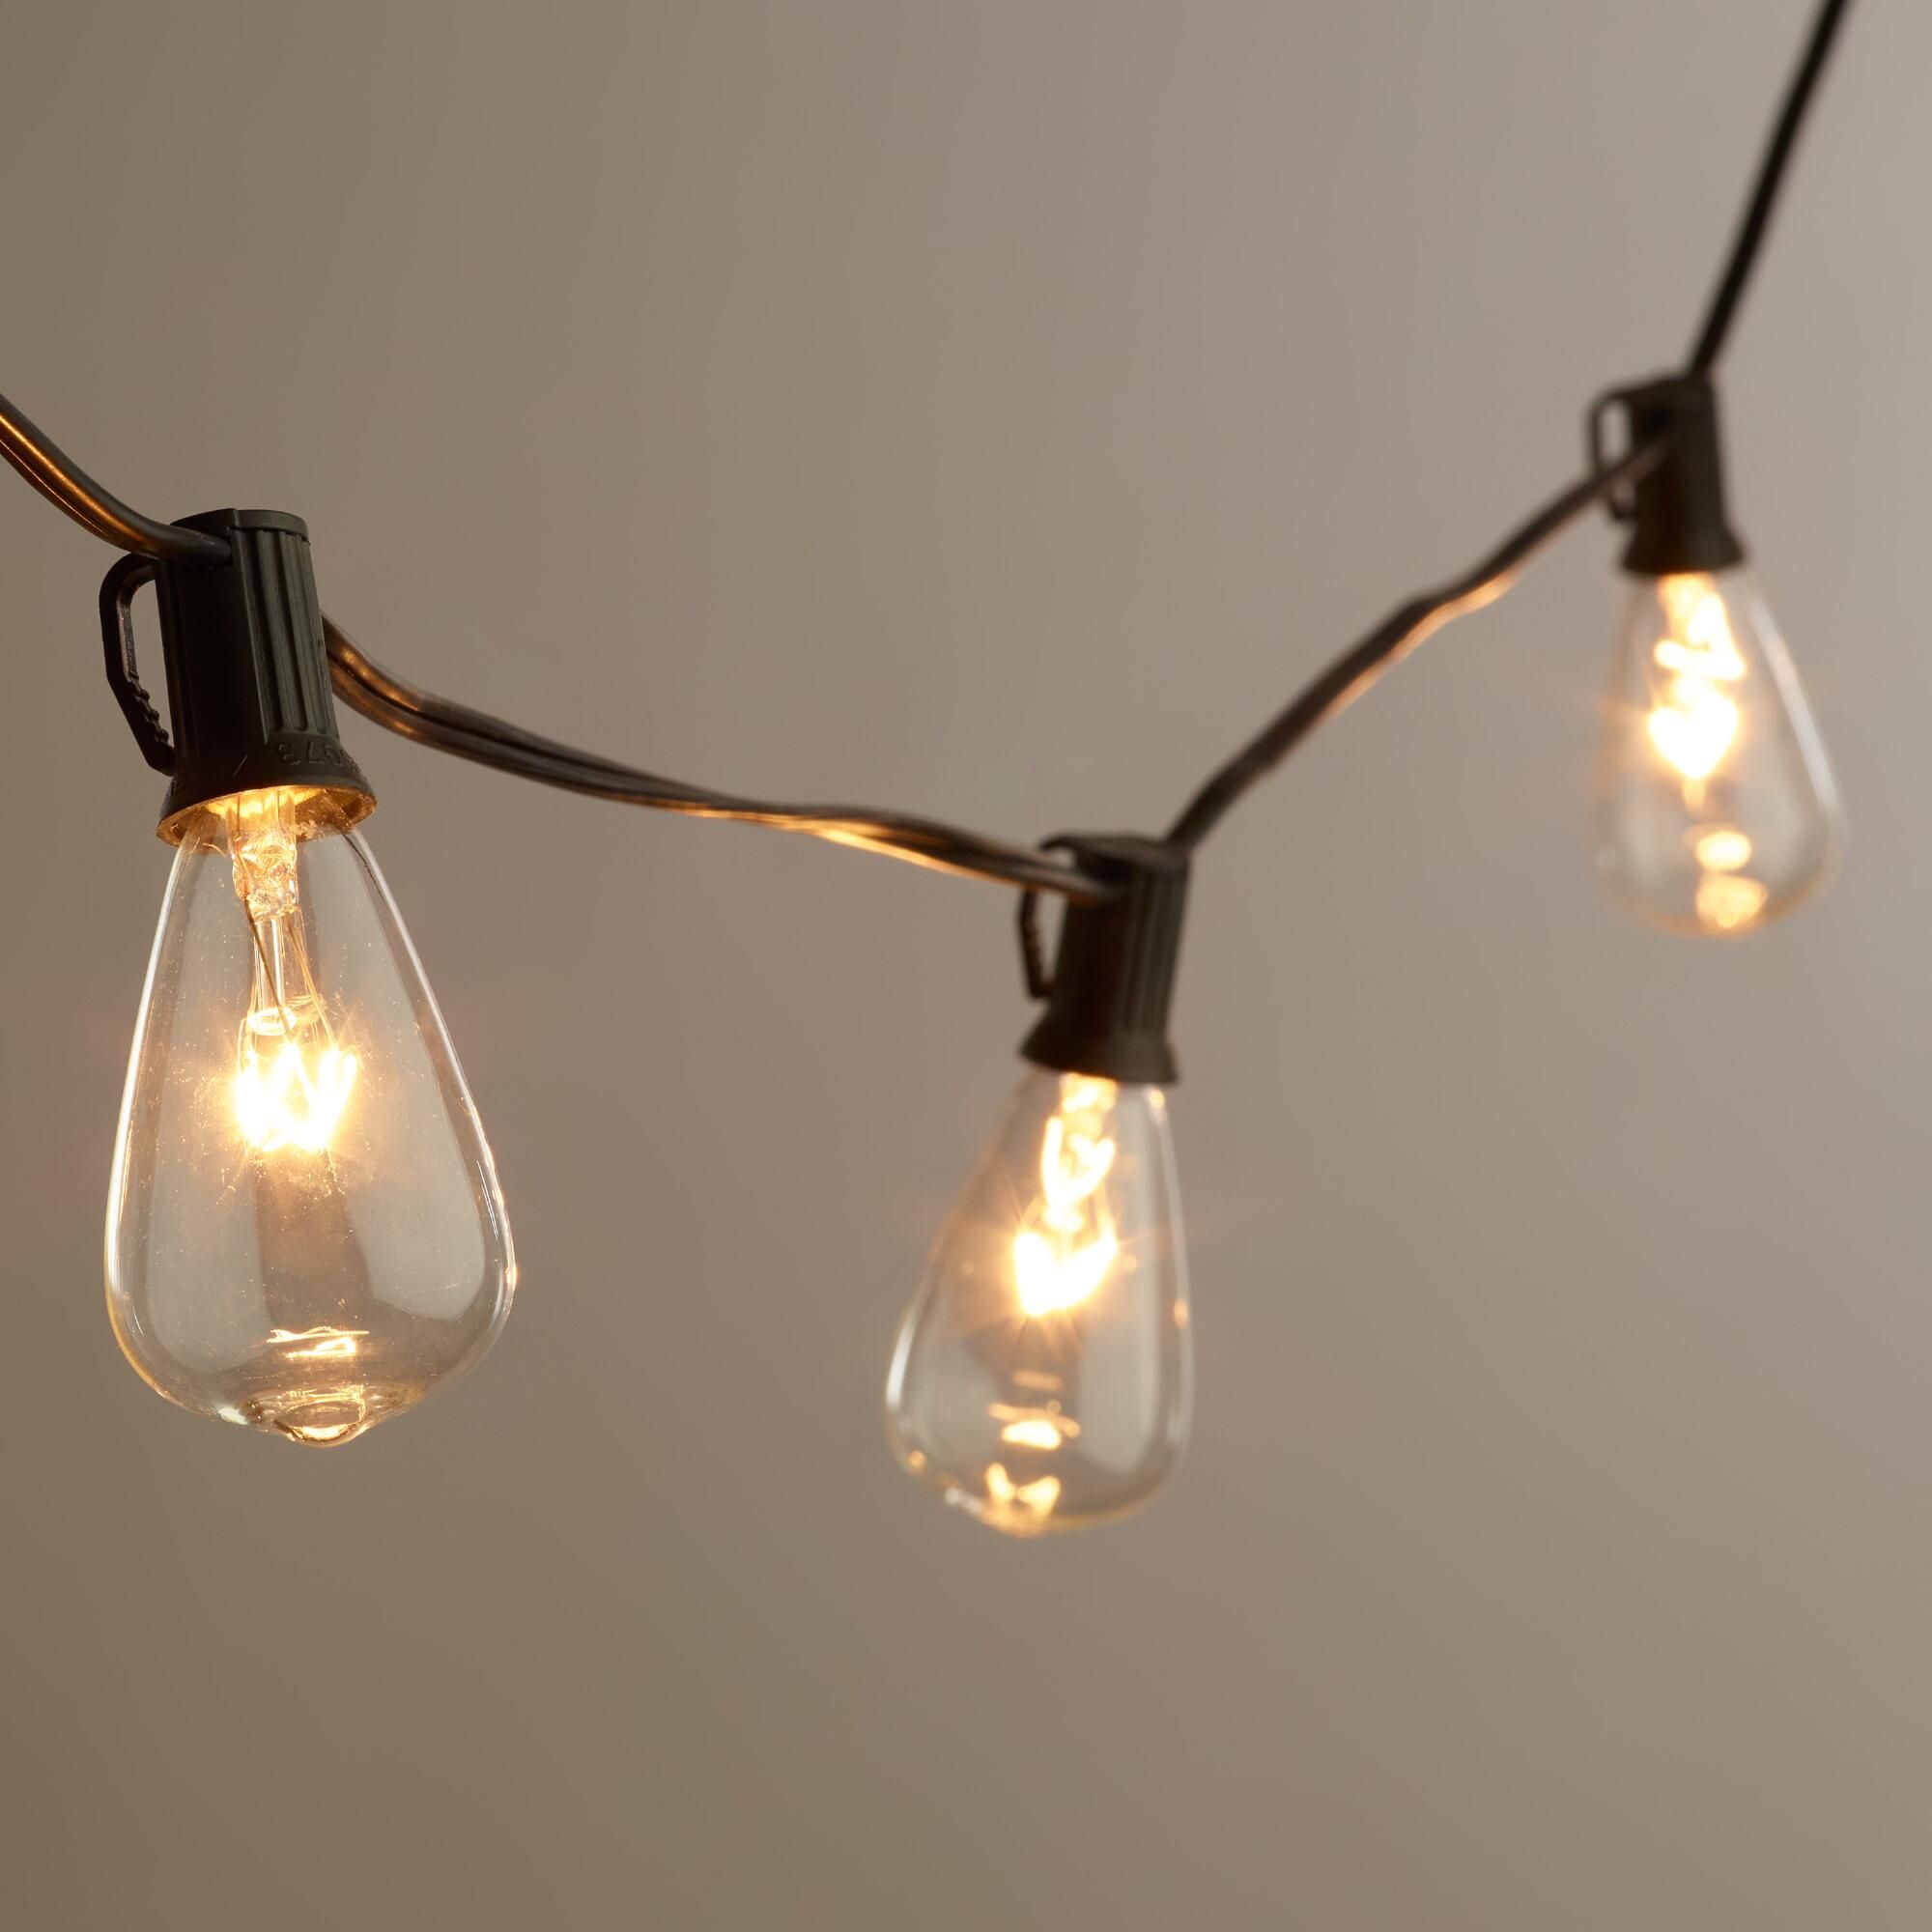 Light Bulbs On A String Amusing Inspiredthe Vintage Light Bulbs Inventedthomas Edison Our Decorating Design